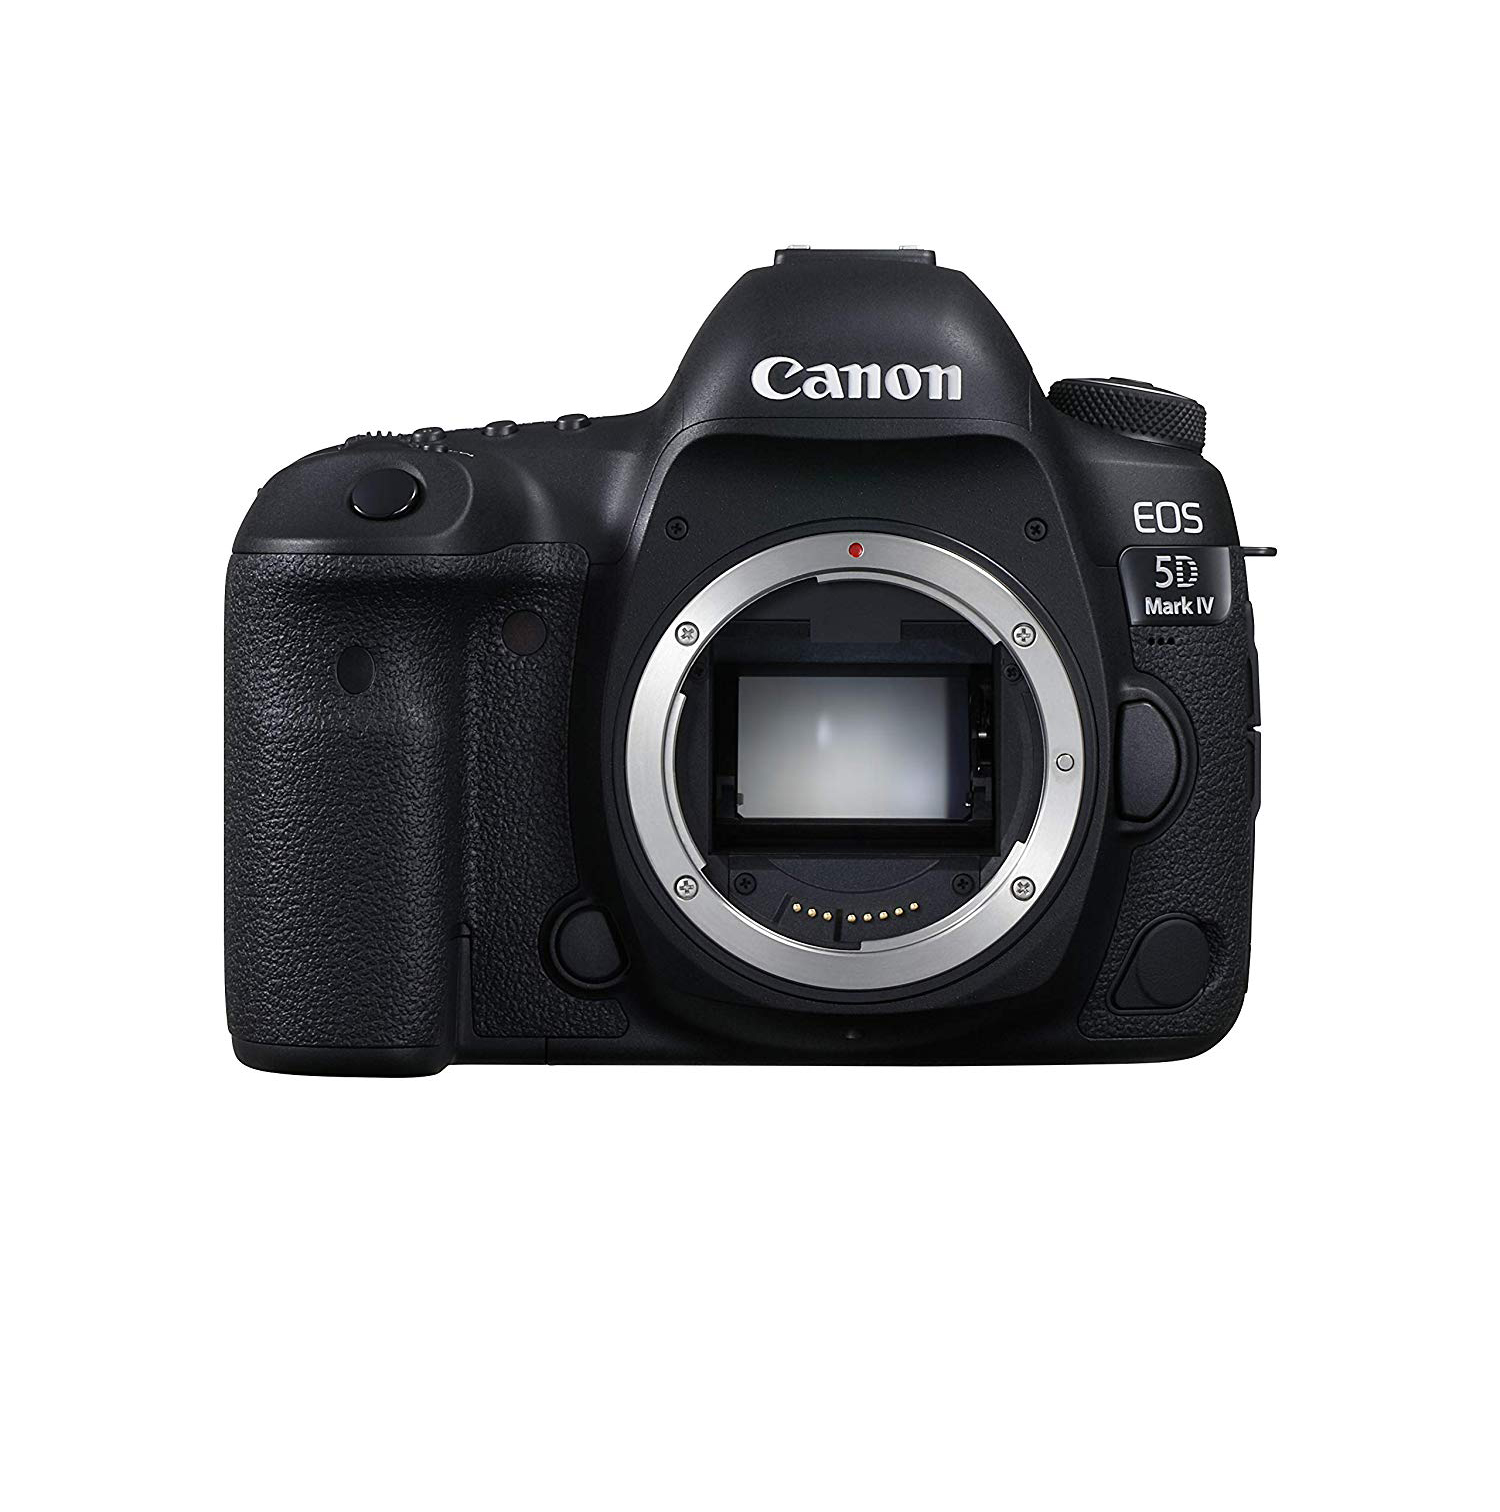 Canon EOS 5D IV SLR - Camera Body, 30.4MP